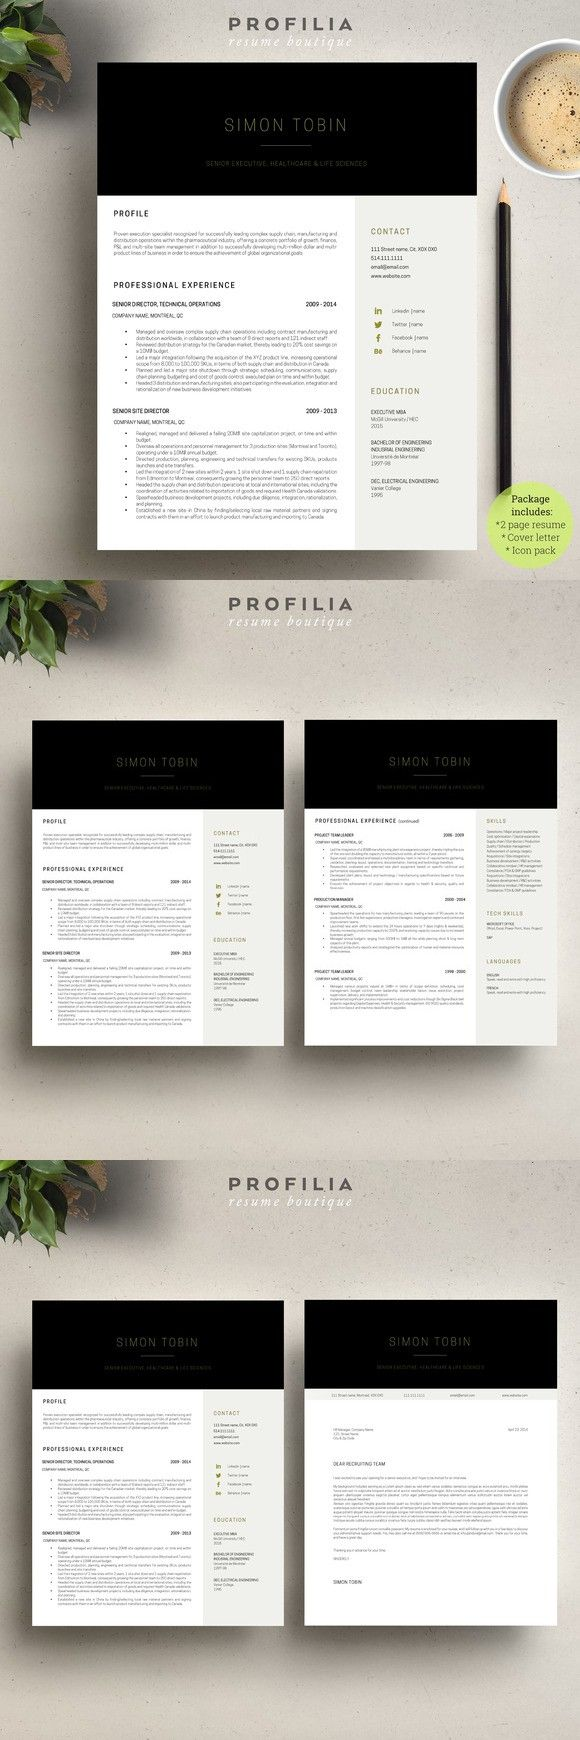 Word Resume u0026 Cover letter Template 127